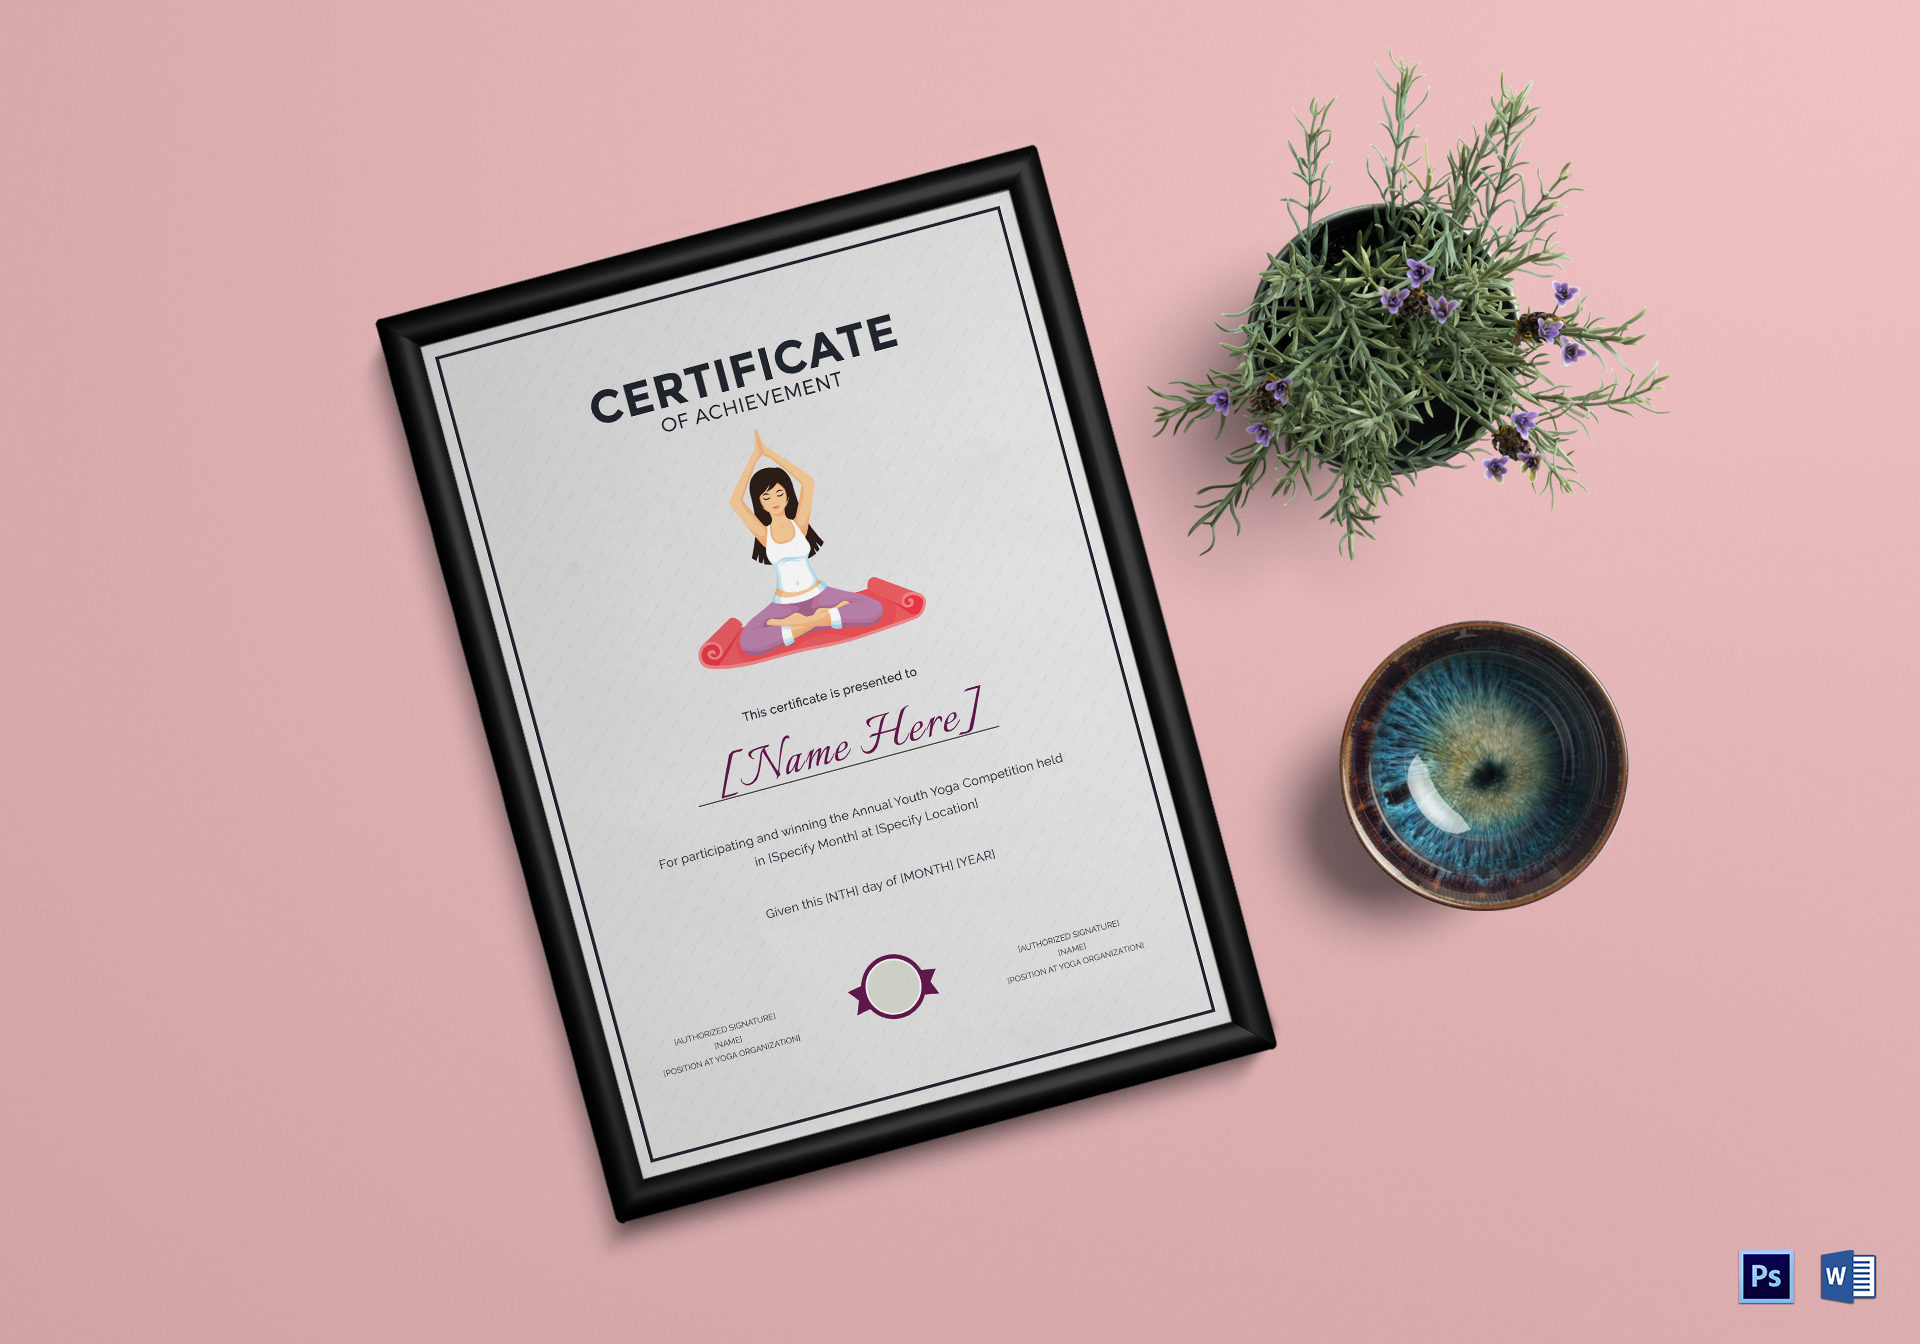 yoga achievement certificate template - Yoga Certificate Template